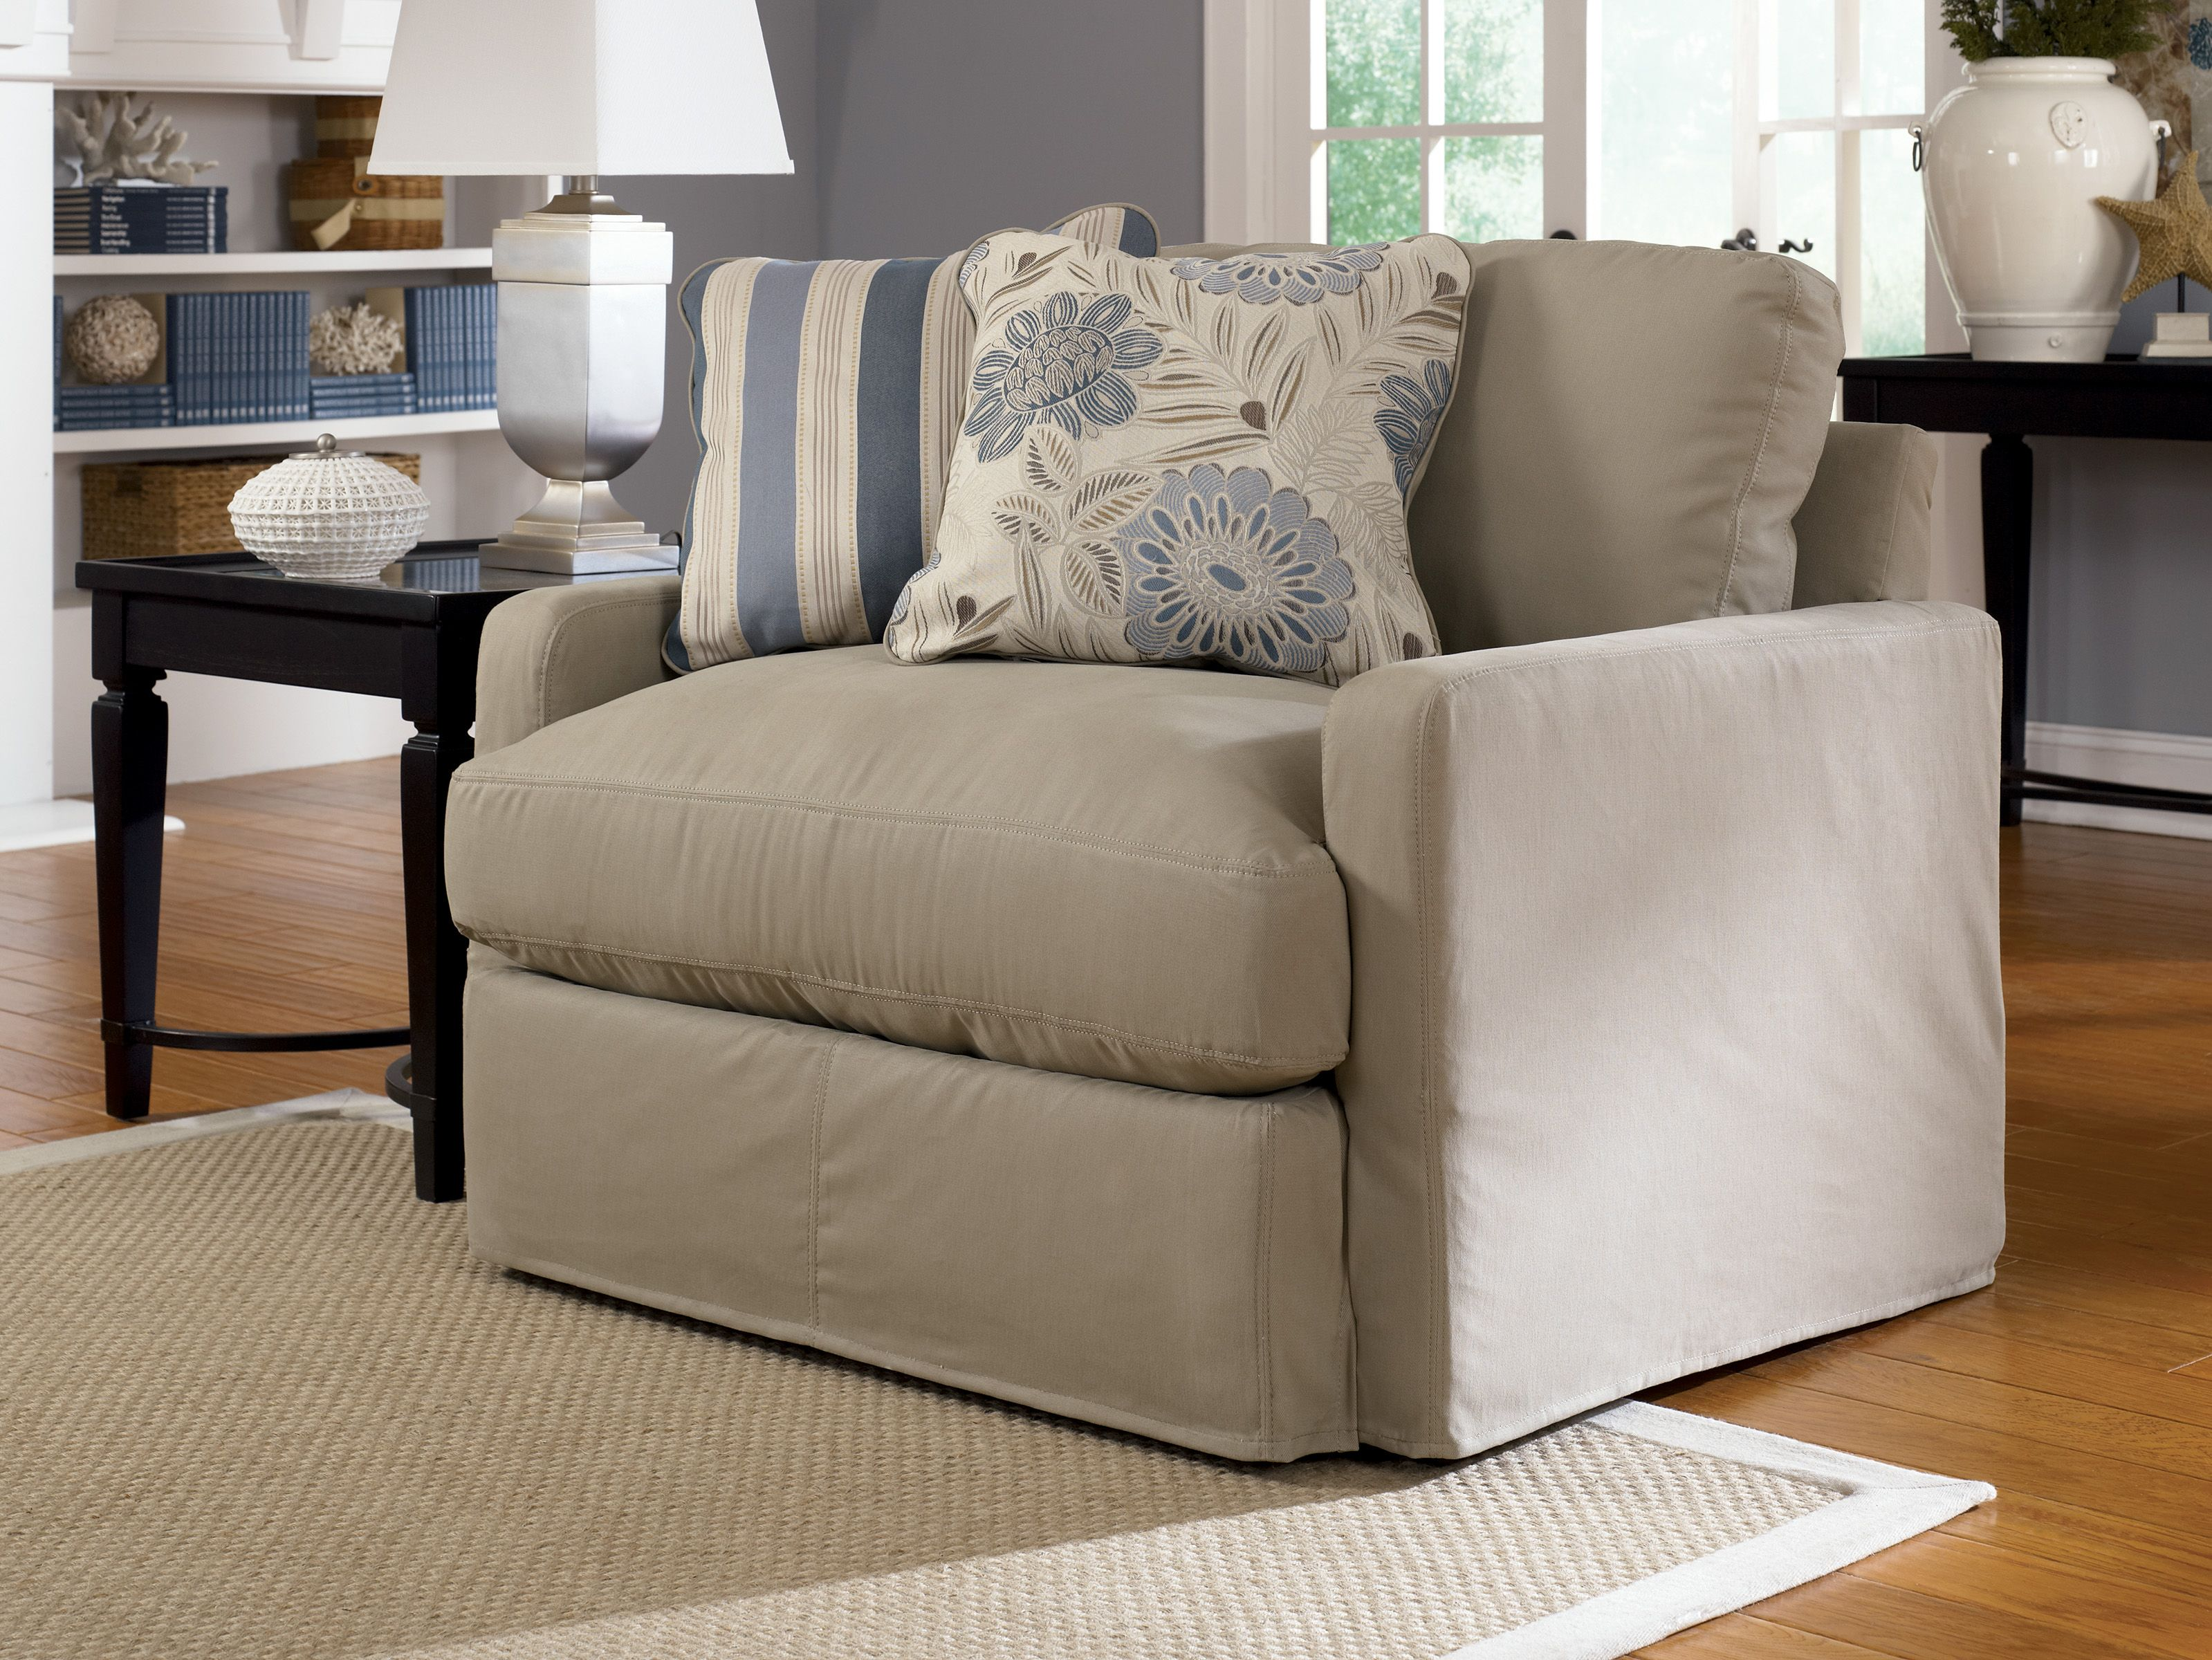 Genial Greyish Cream One And A Half Chair With Pillows